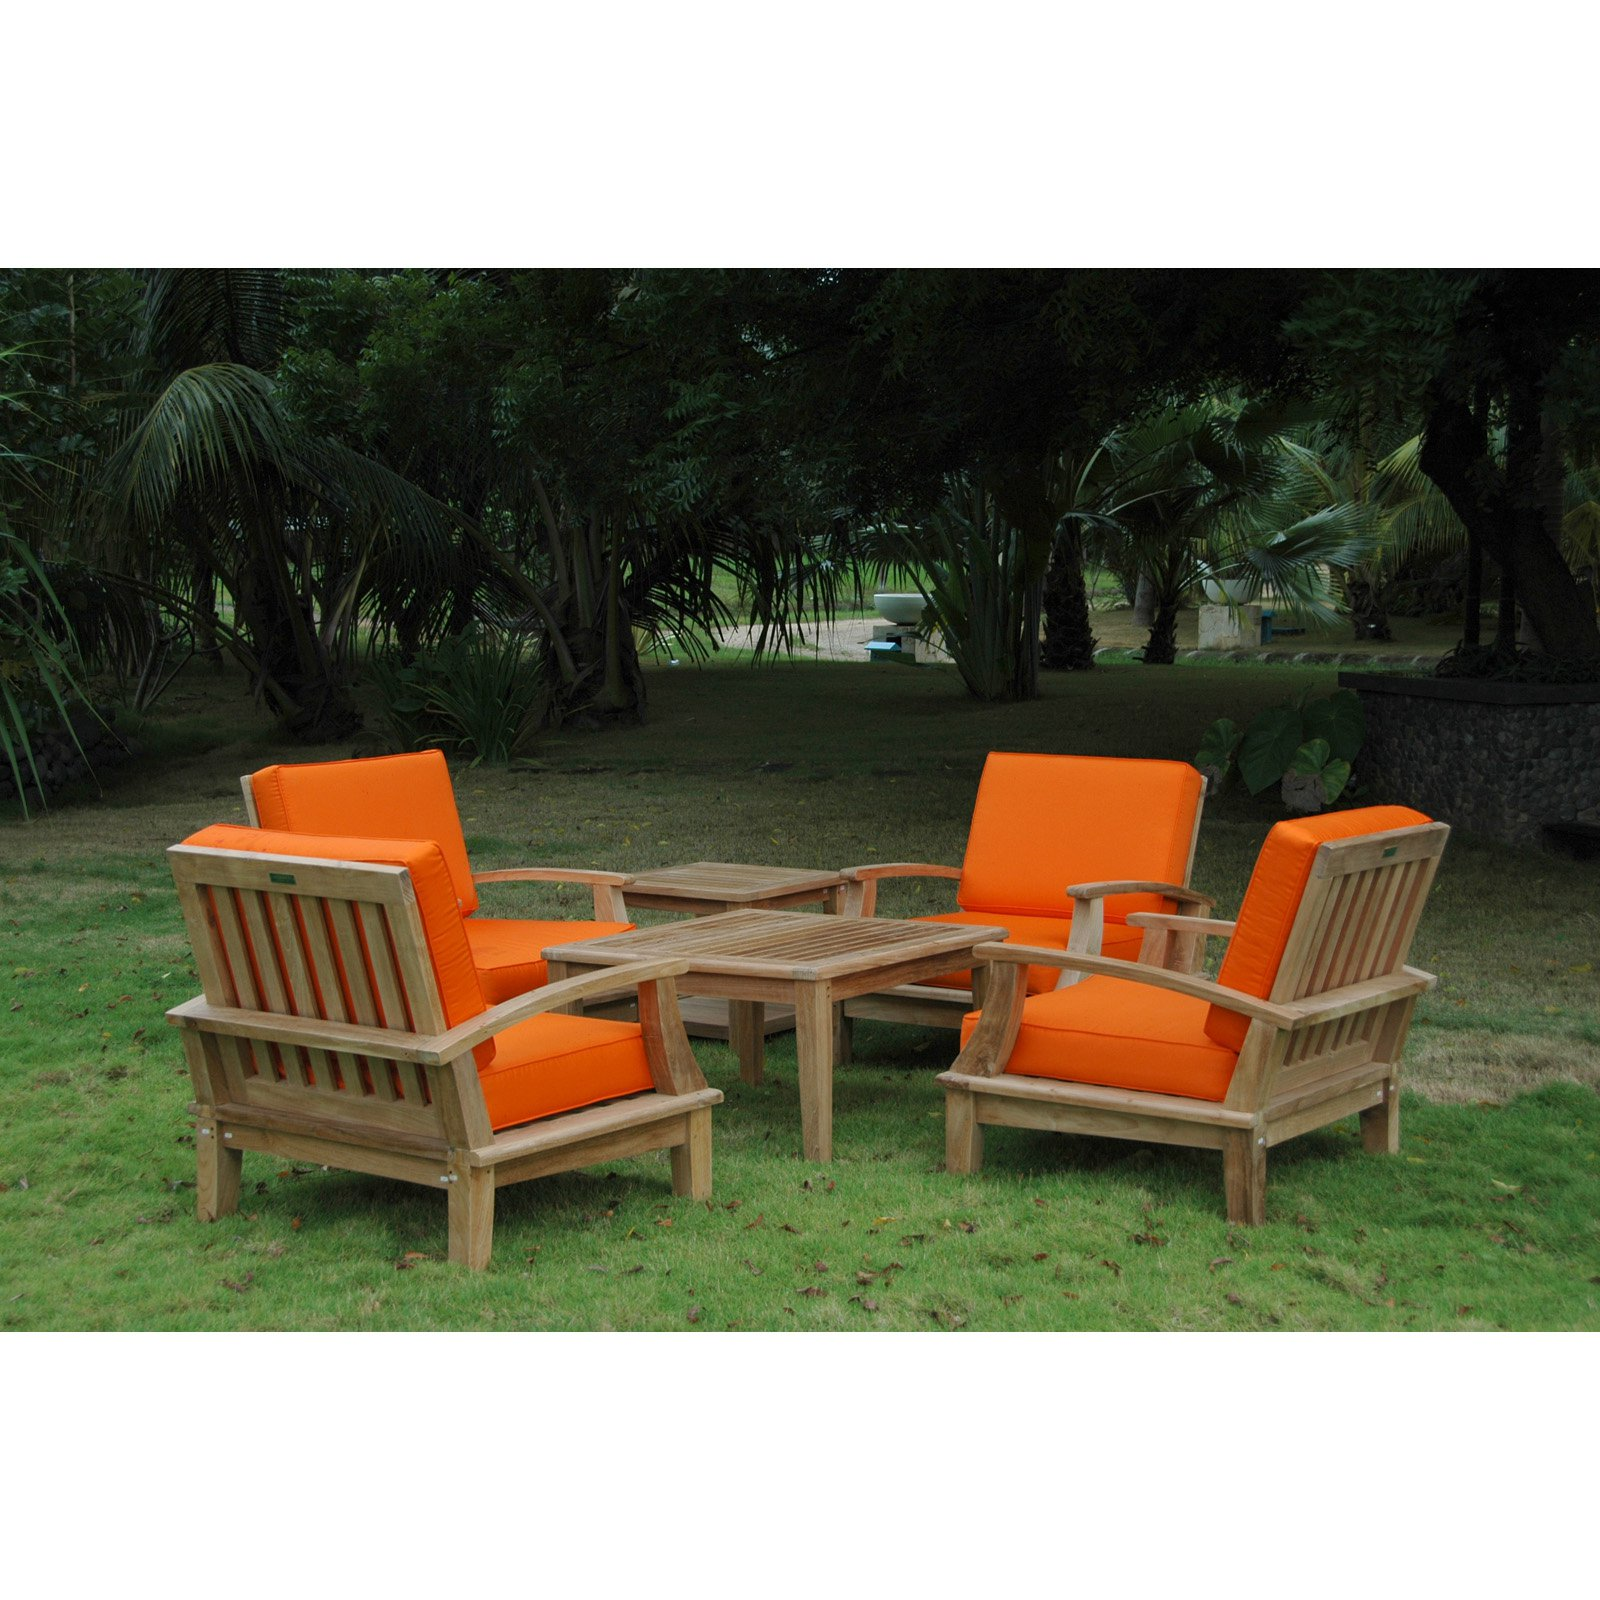 Anderson Teak Brianna Wooden 6 Piece Patio Conversation Set with Square Table